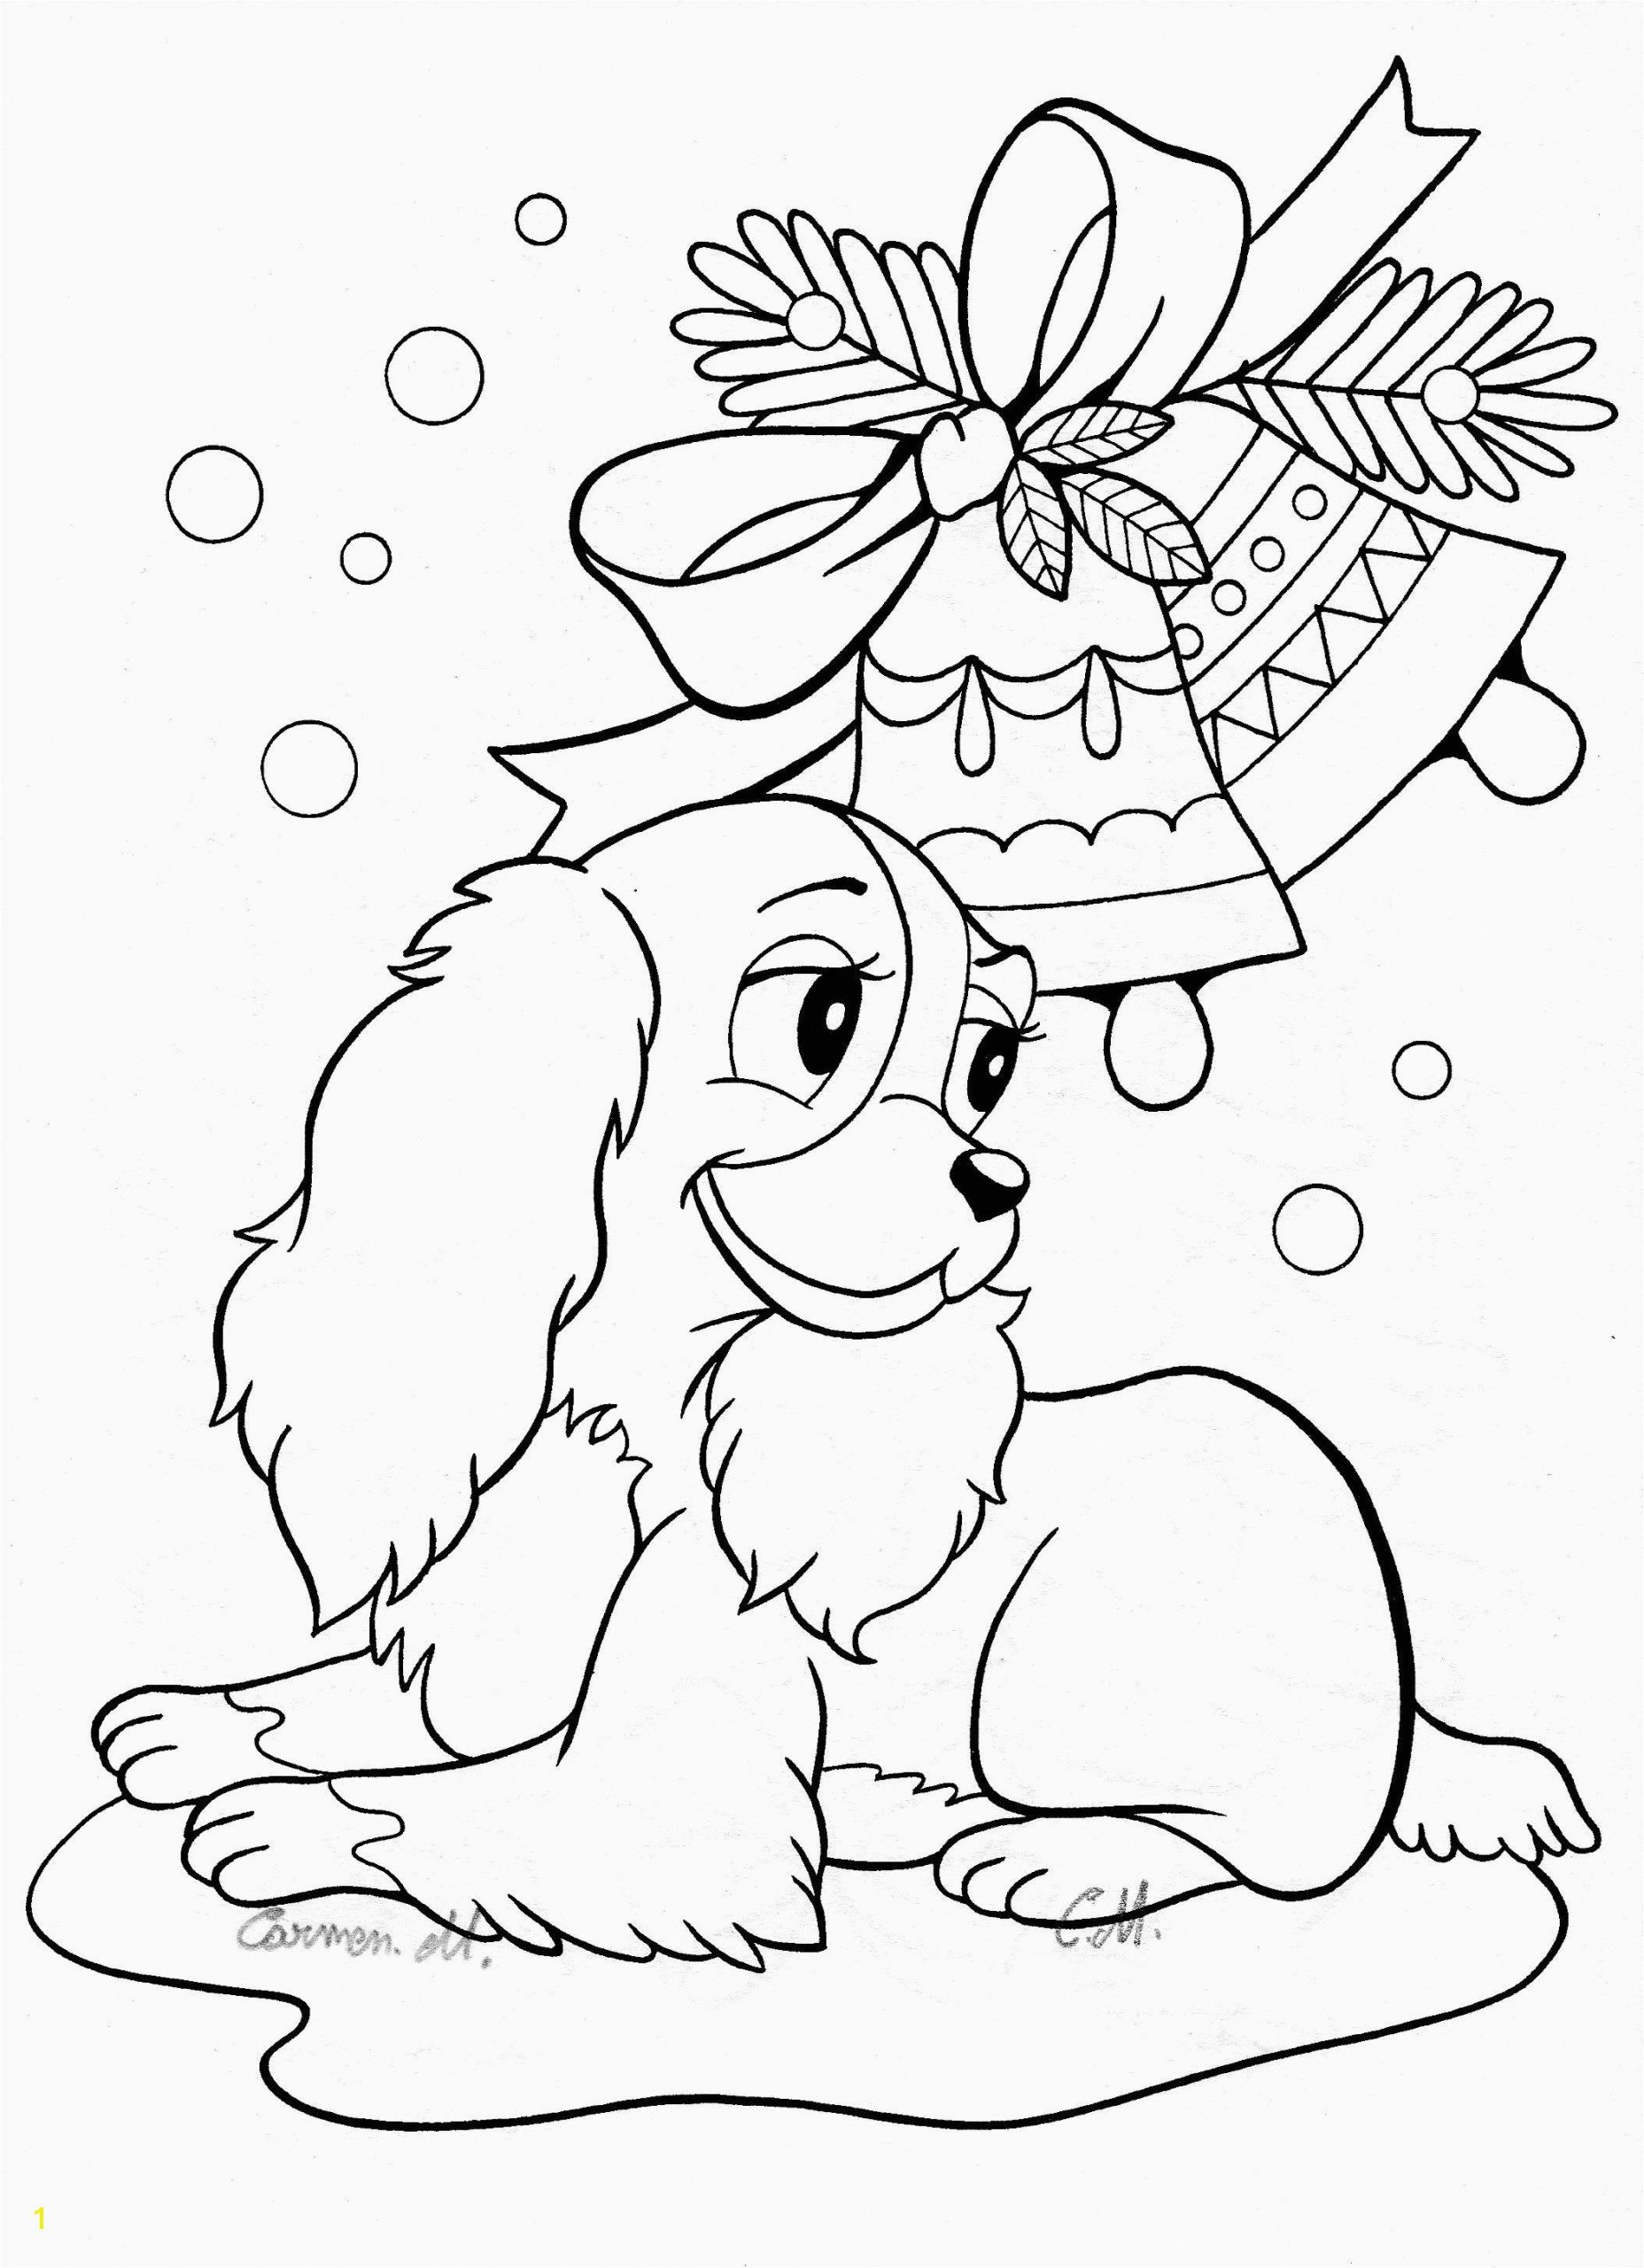 Coloring Pages for Easter Bunny Easter Bunny Coloring Sheet Printable